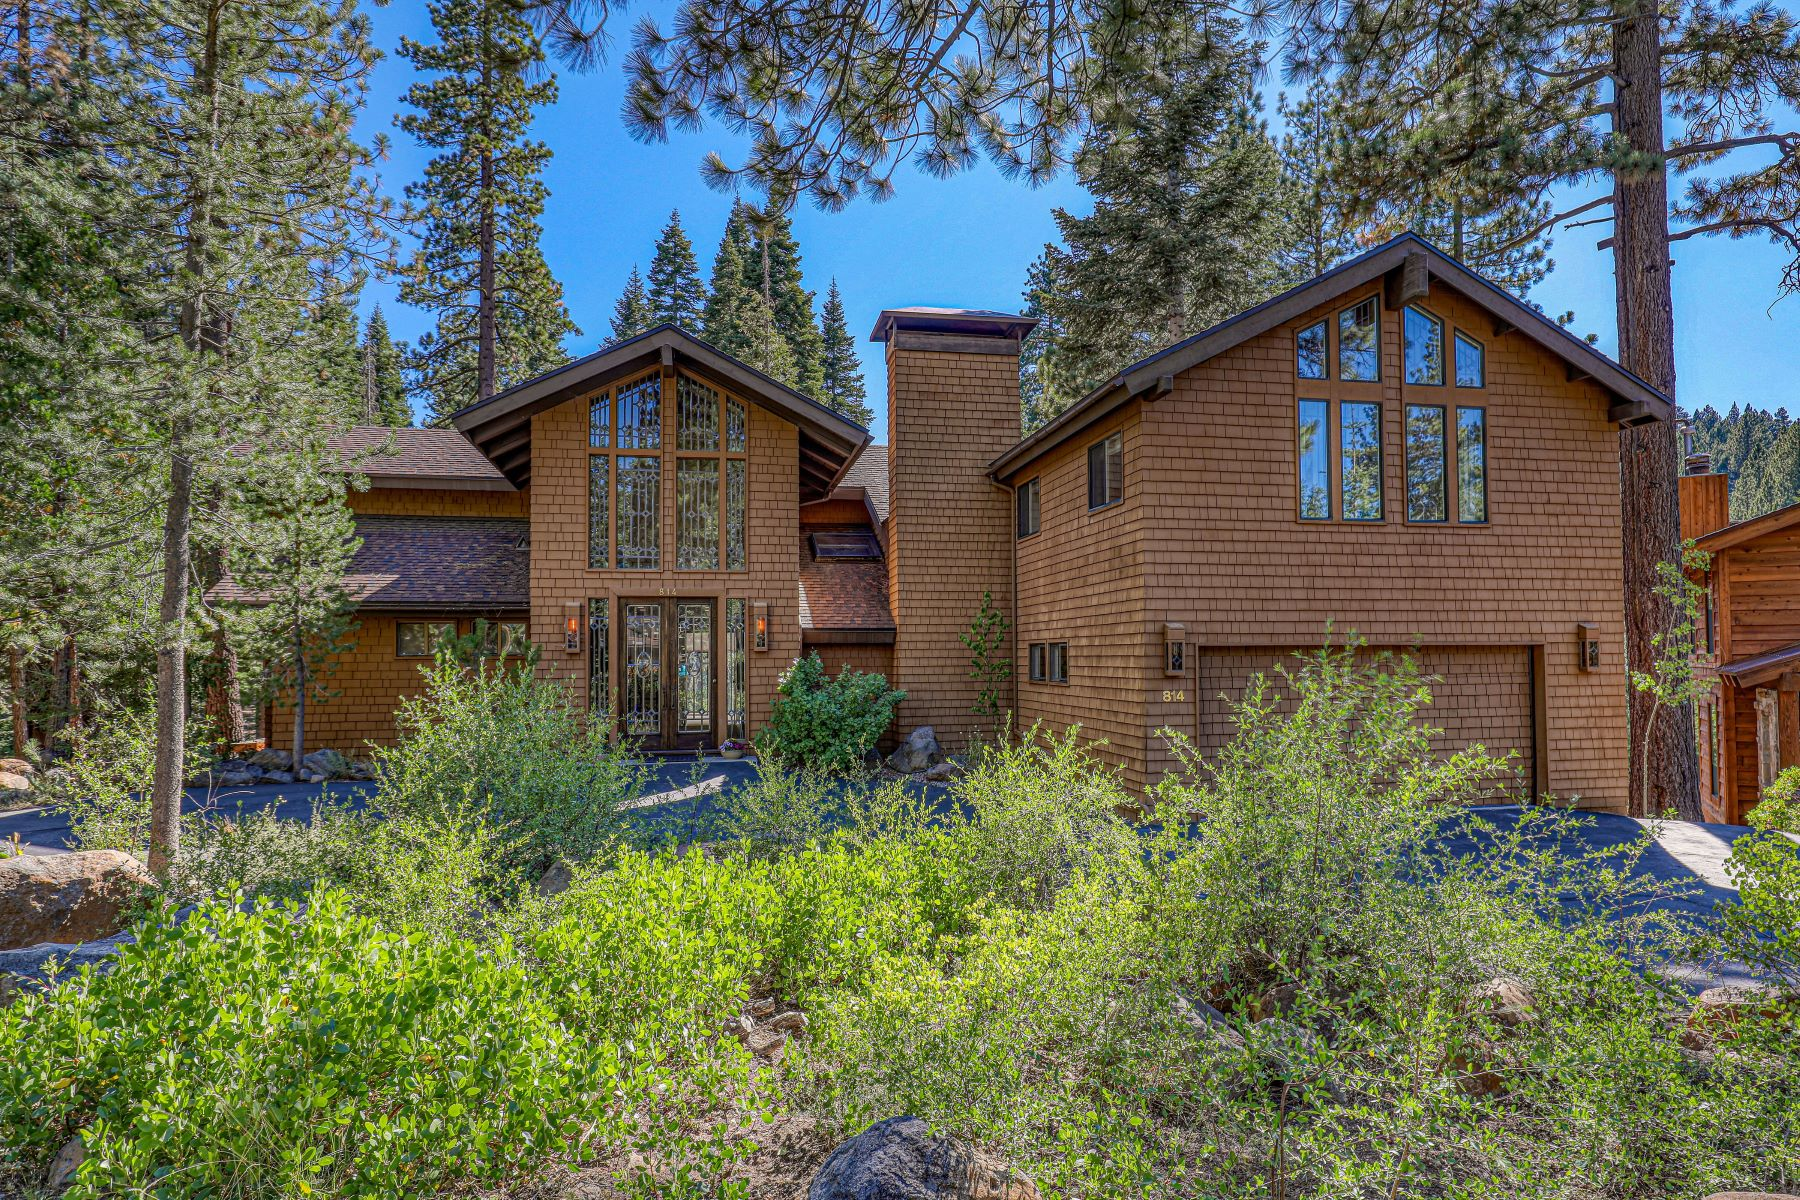 Single Family Homes for Active at Northstar Creekside Home 814 Beaver Pond Truckee, California 96161 United States